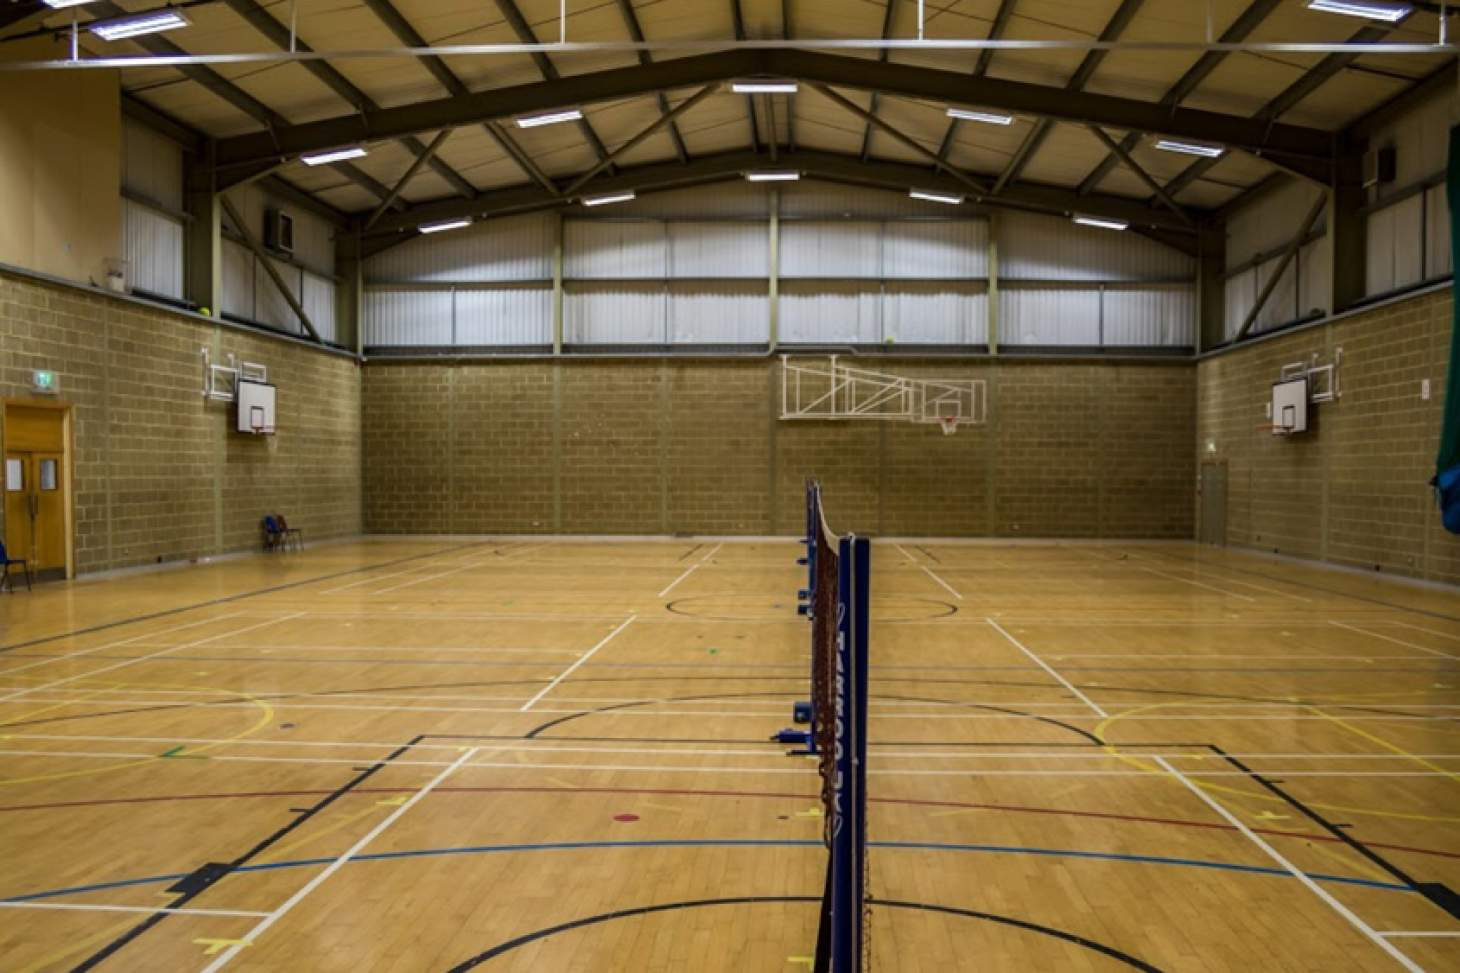 Portslade Sports Centre Indoor basketball court